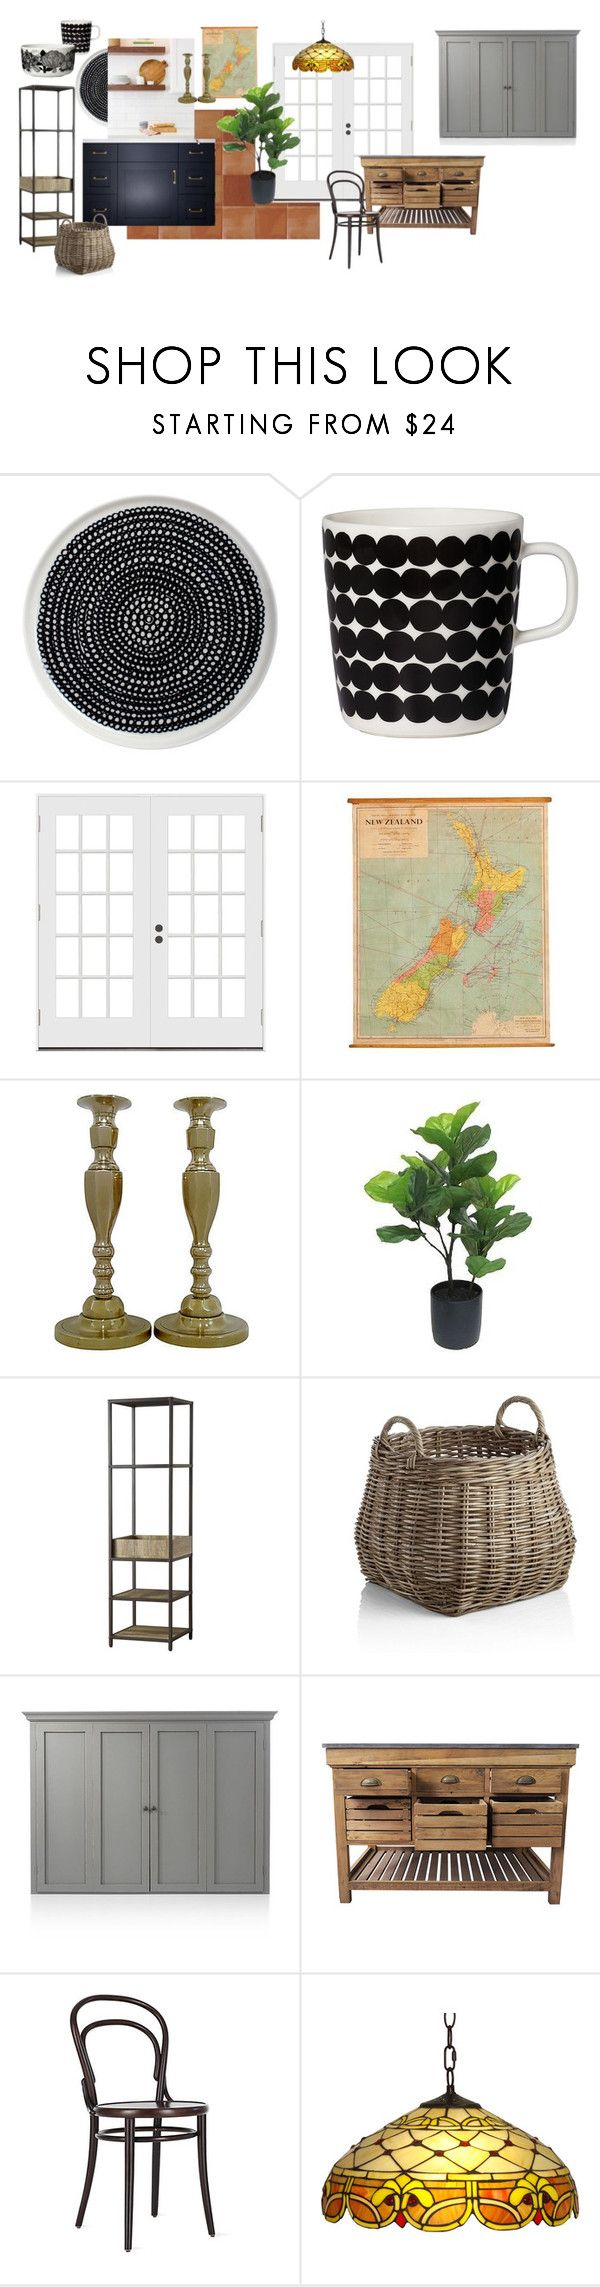 """Kitchen moodboard"" by missmelaniejane on Polyvore featuring interior, interiors, interior design, home, home decor, interior decorating, Marimekko, Threshold, Tribecca Home and Crate and Barrel"